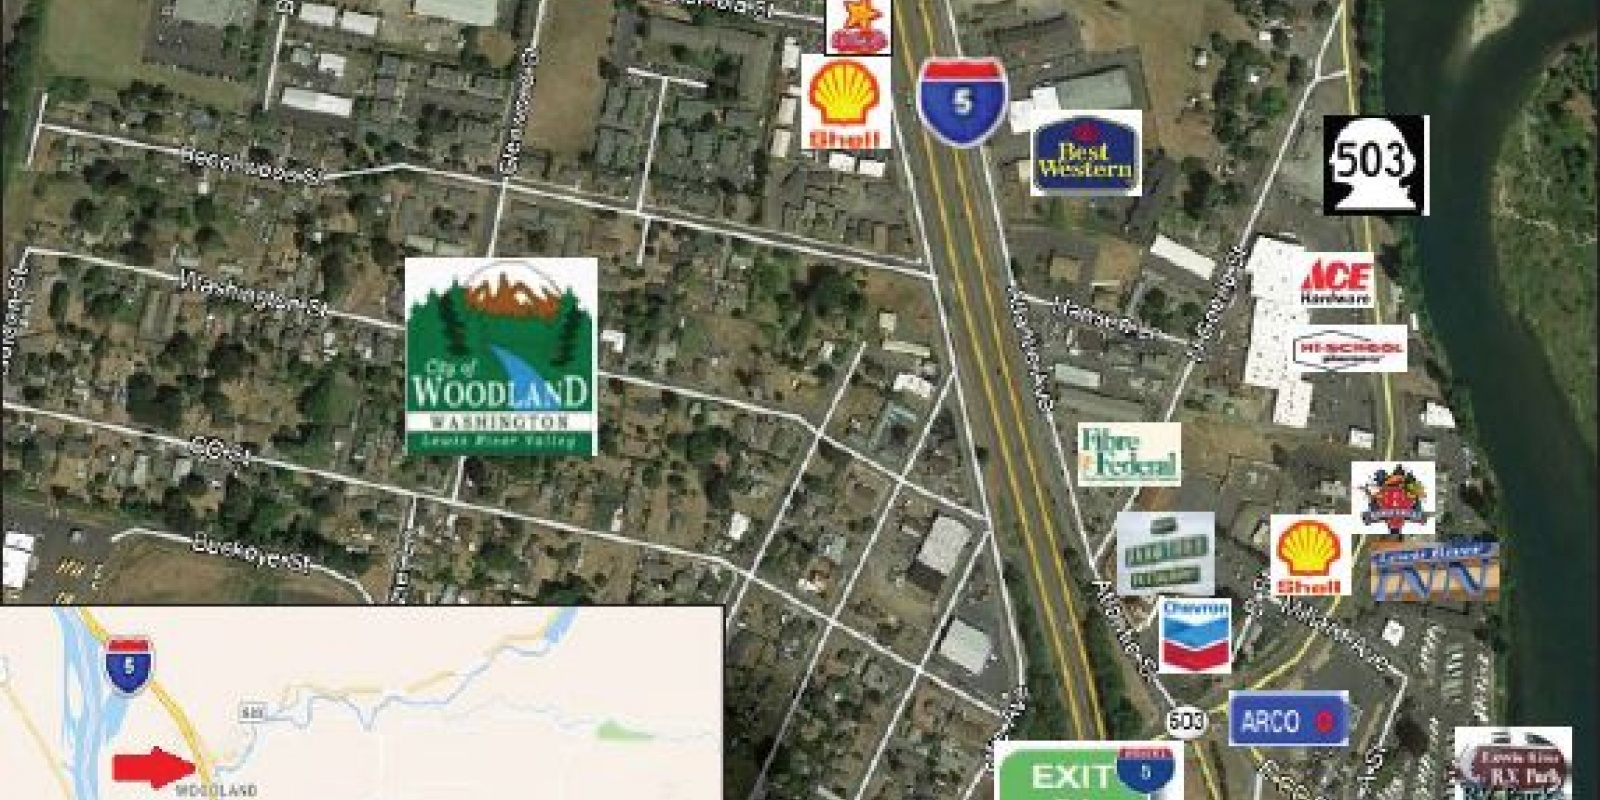 Woodland Hwys, Businesses